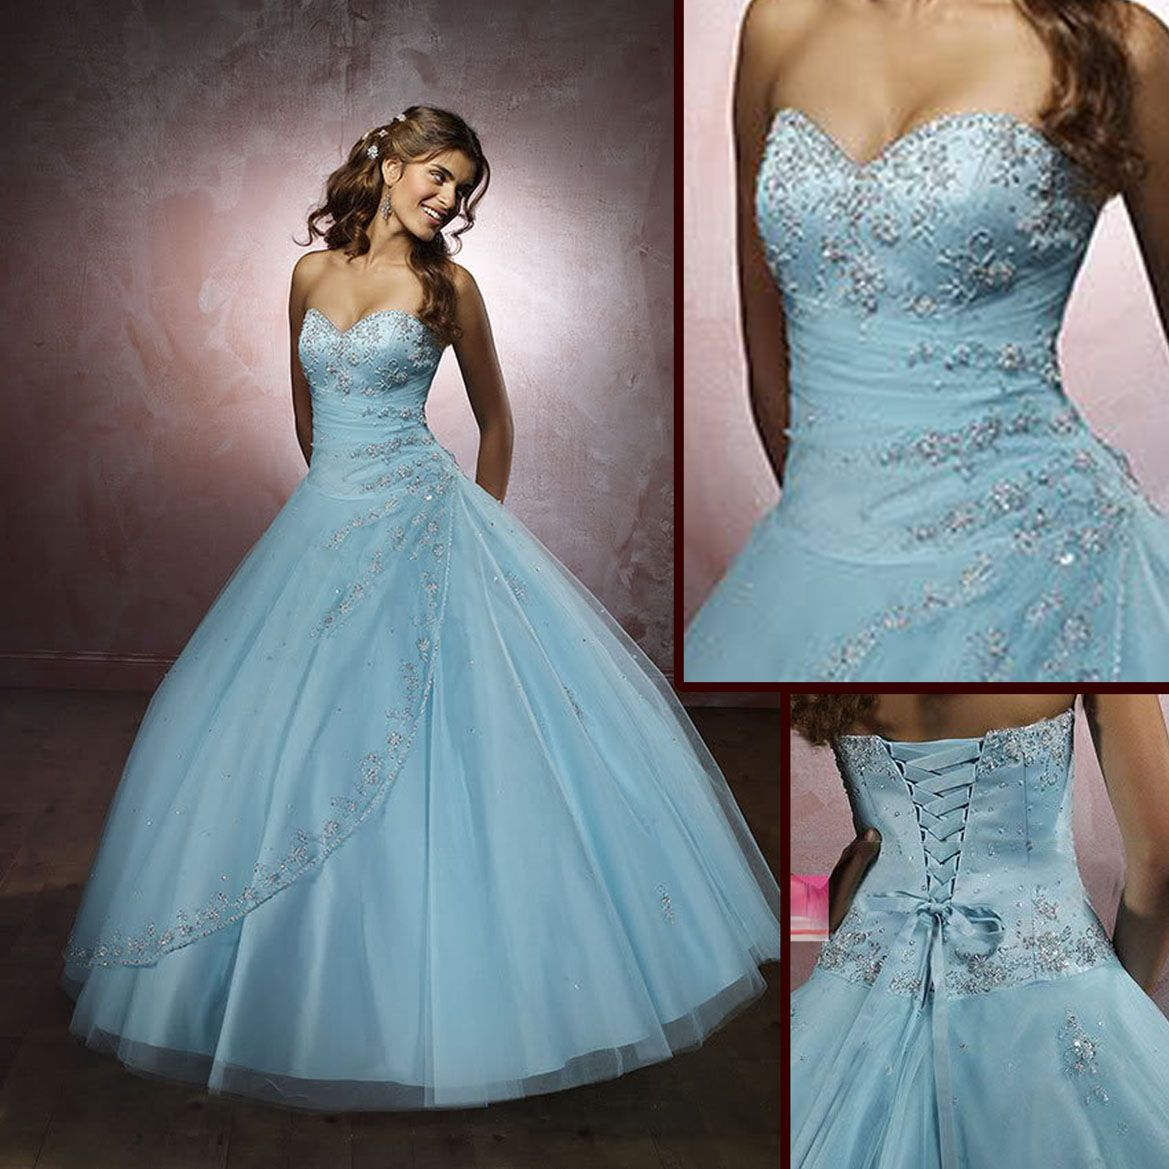 Fancy Bridal Gowns Used Sketch - All Wedding Dresses ...